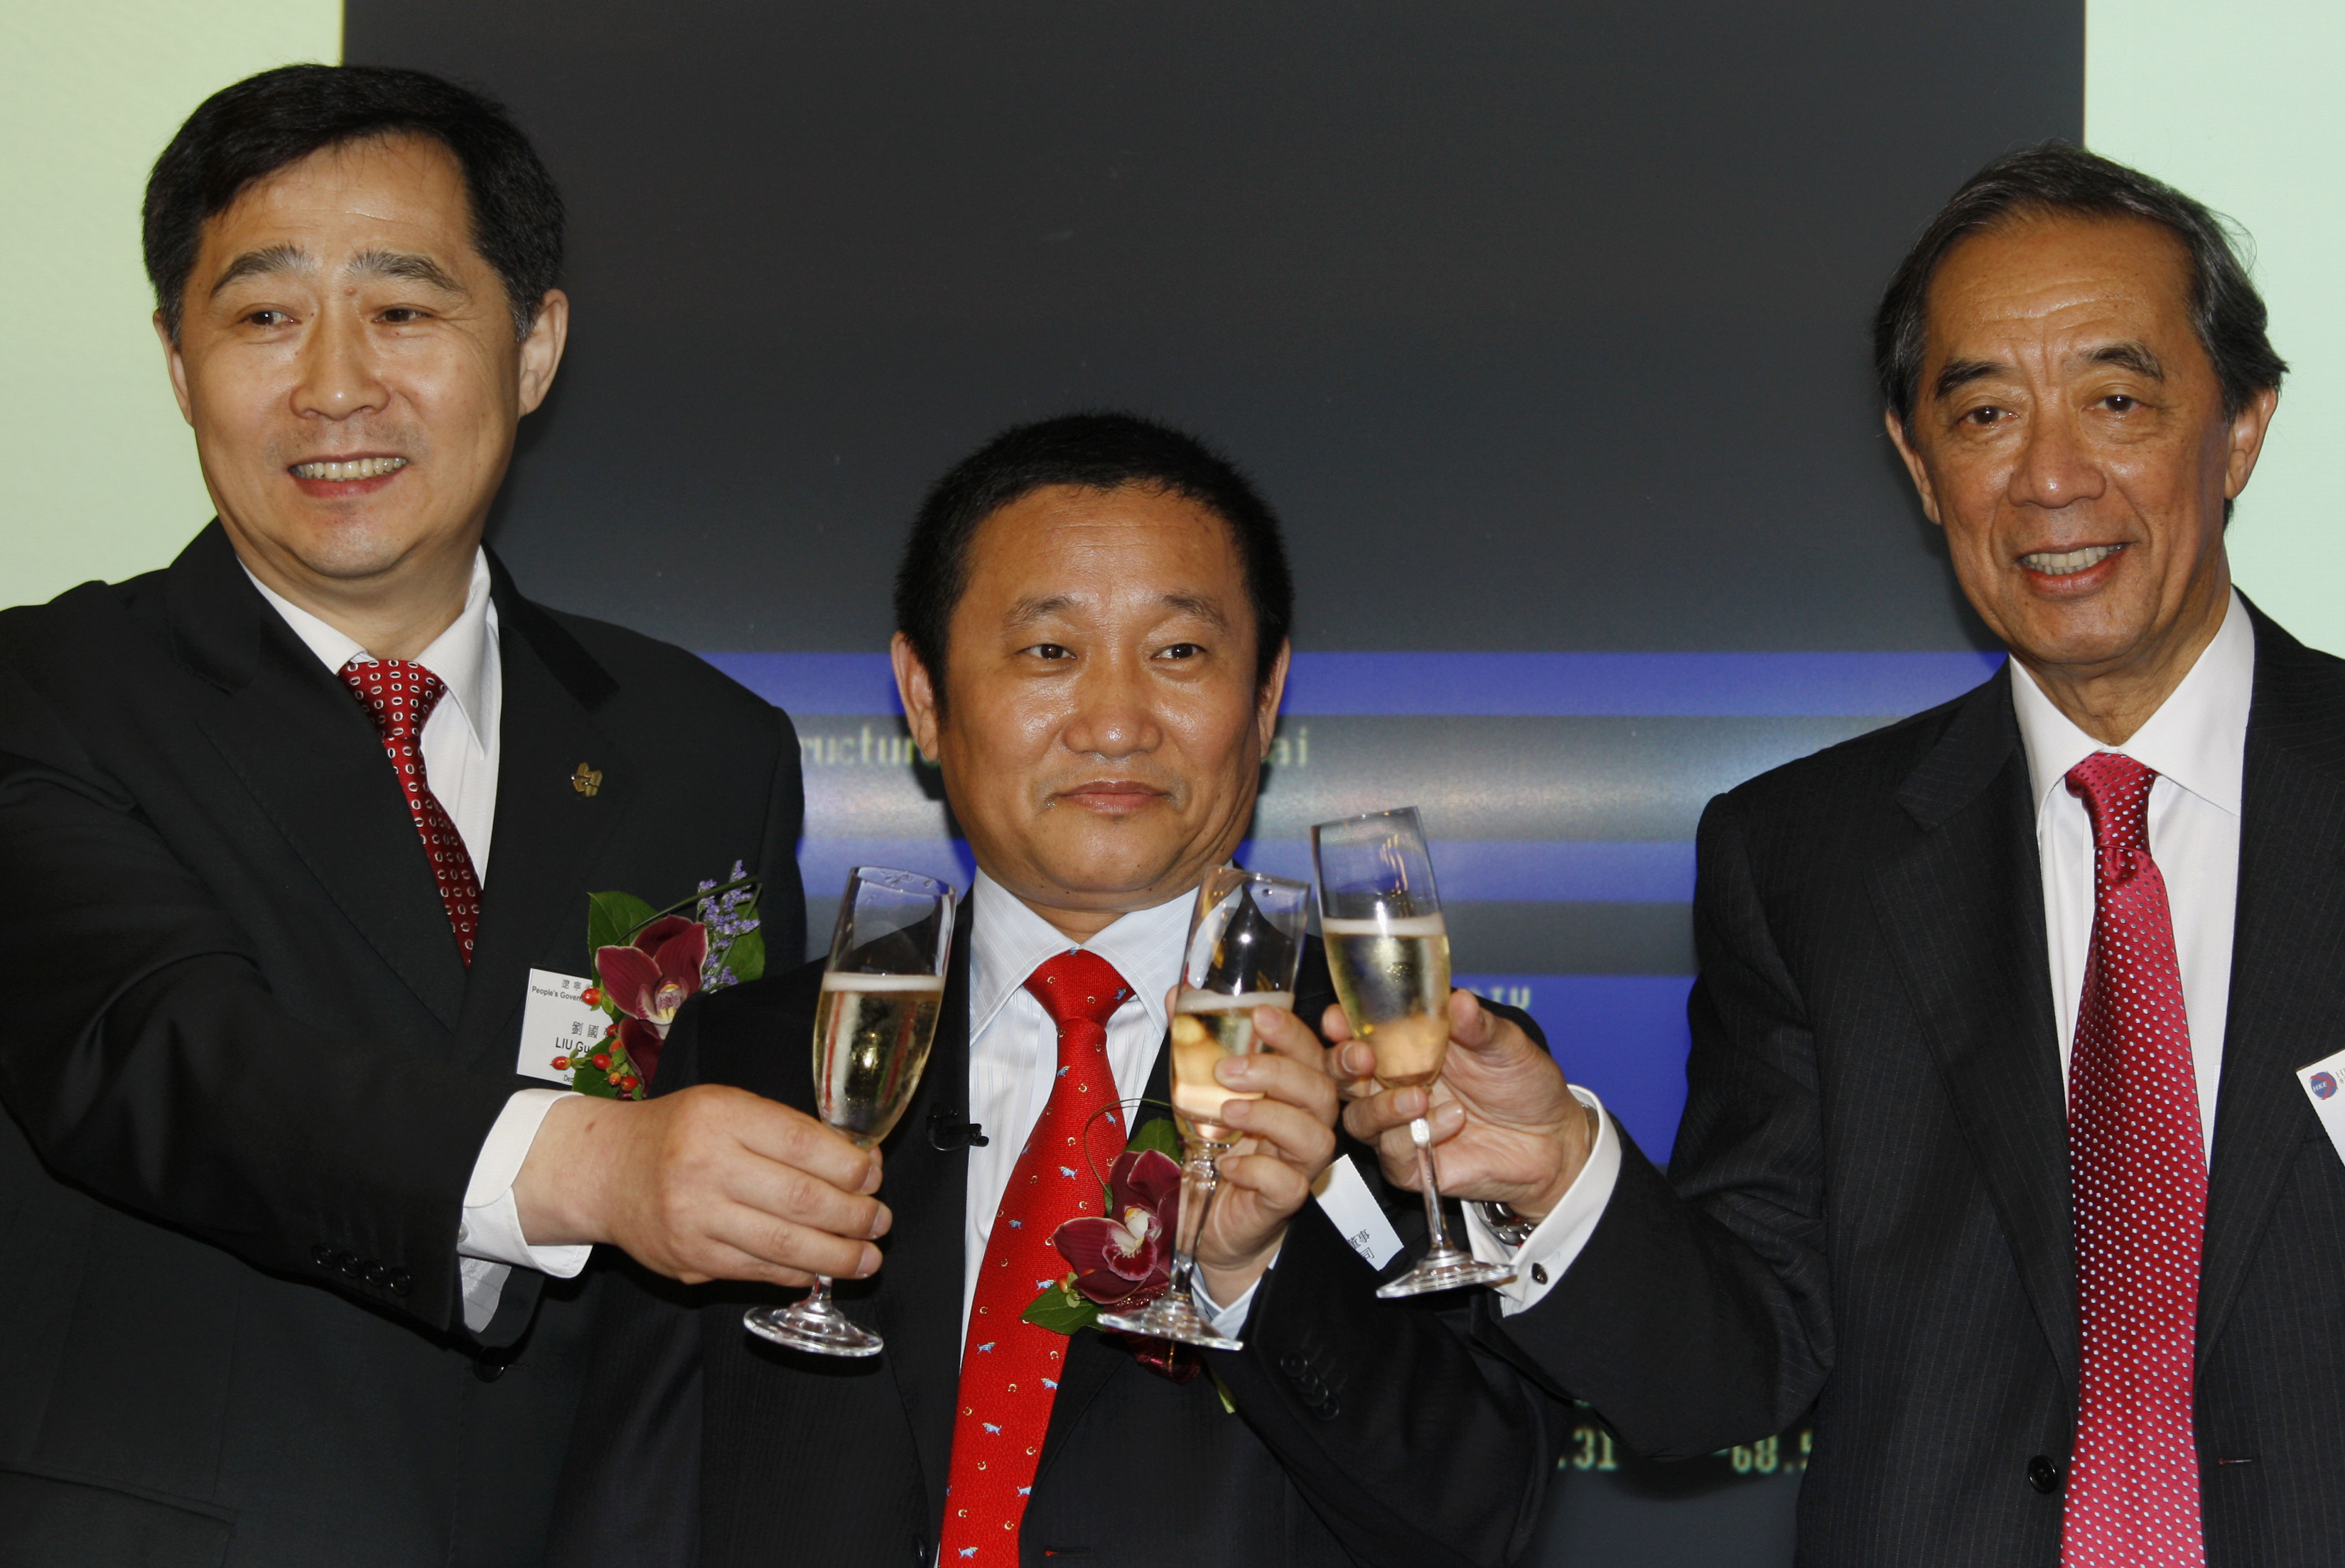 (L-R) China's Liaoning province Deputy Governor Liu Guoqiang (L), China Zhongwang Holdings Chairman Liu Zhongtian and Hong Kong Stock Exchange Chairman Ronald Arculli (R) toast during the debut of Zhongwang Holdings at the Hong Kong Stock Exchange May 8, 2009. Shares of China Zhongwang Holdings, Asia's largest maker of aluminium extrusion products, fell about 2 percent in their Hong Kong trading debut on Friday after the company raised $1.3 billion in the world's biggest IPO since August. REUTERS/Bobby Yip (CHINA) - GM1E5580X0G01